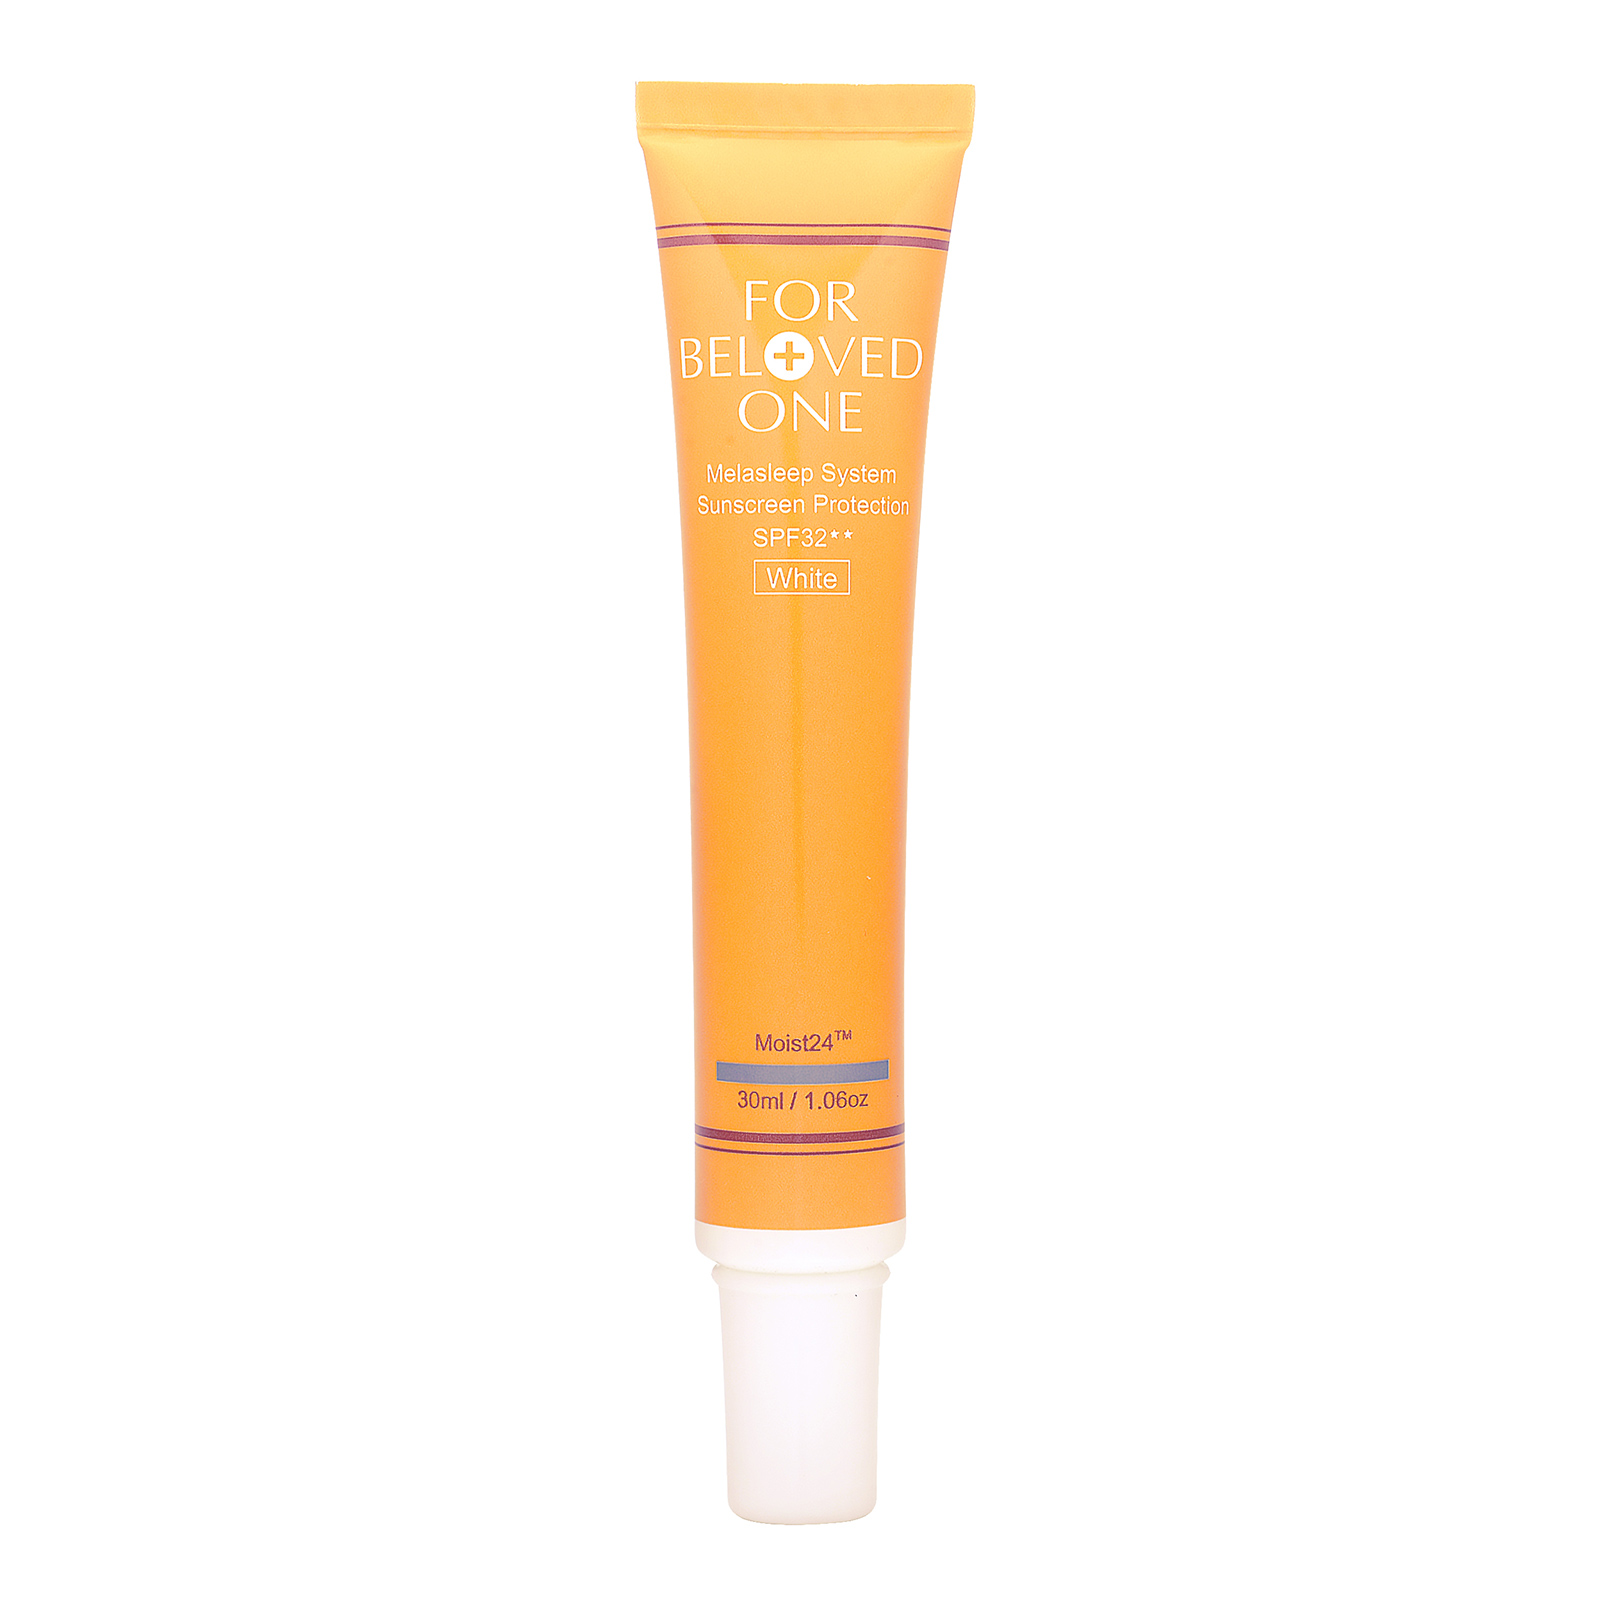 For Beloved One Melasleep Whitening  System Sunscreen Protection SPF32 ++ 1.06oz, 30ml